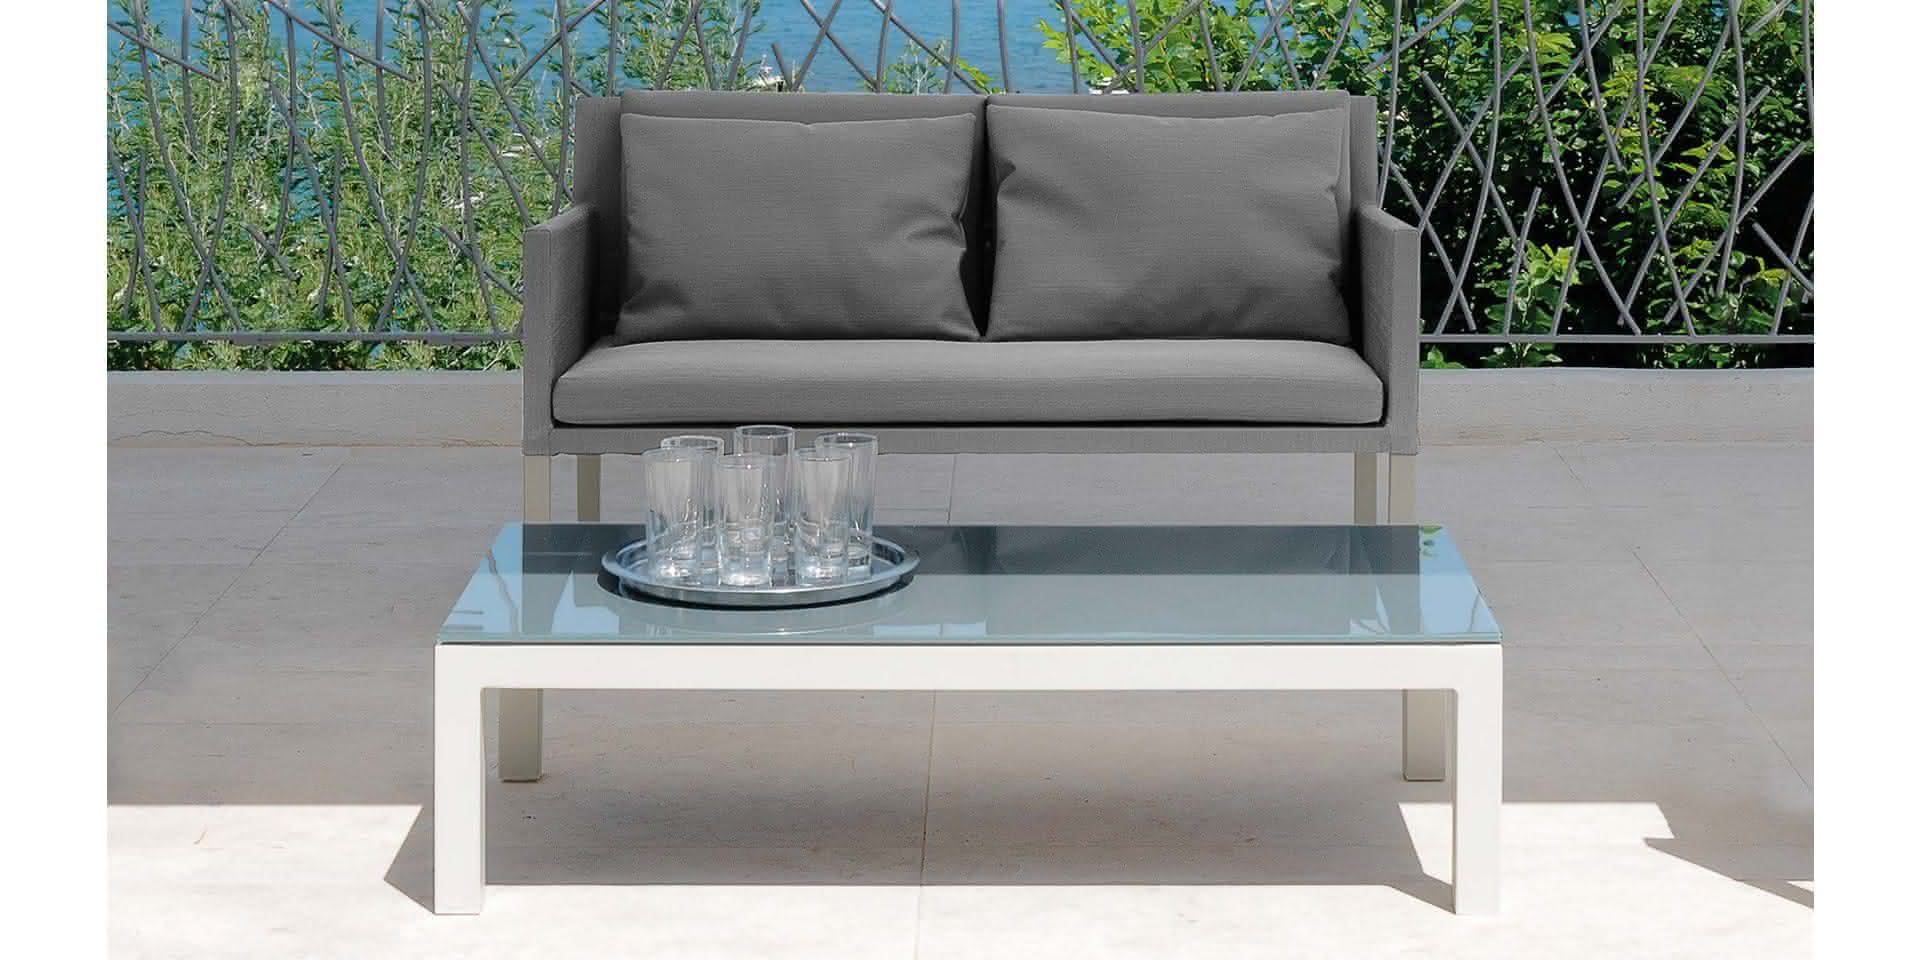 Bettsofa Livique Step Sofa Topsimages